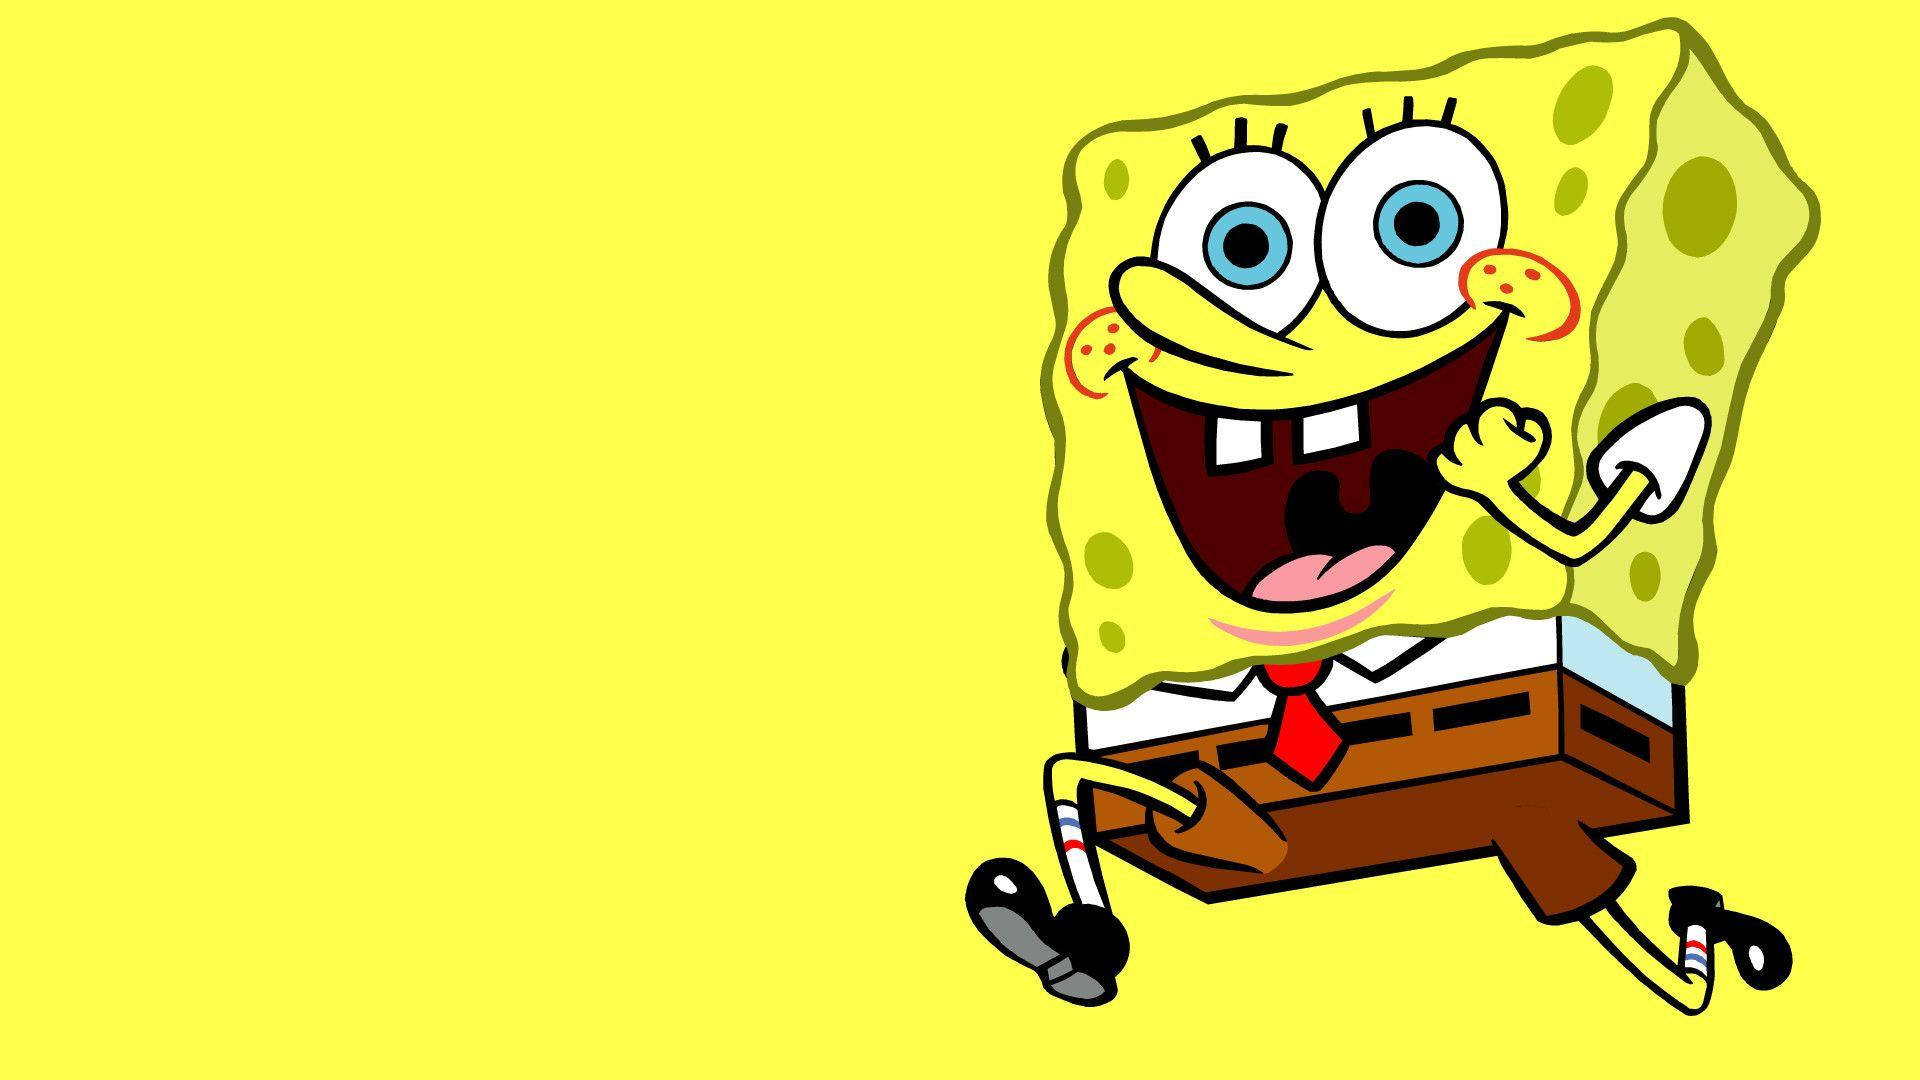 Glamorous Spongebob Wallpapers 1920x1080PX ~ Spongebob Wallpaper ...